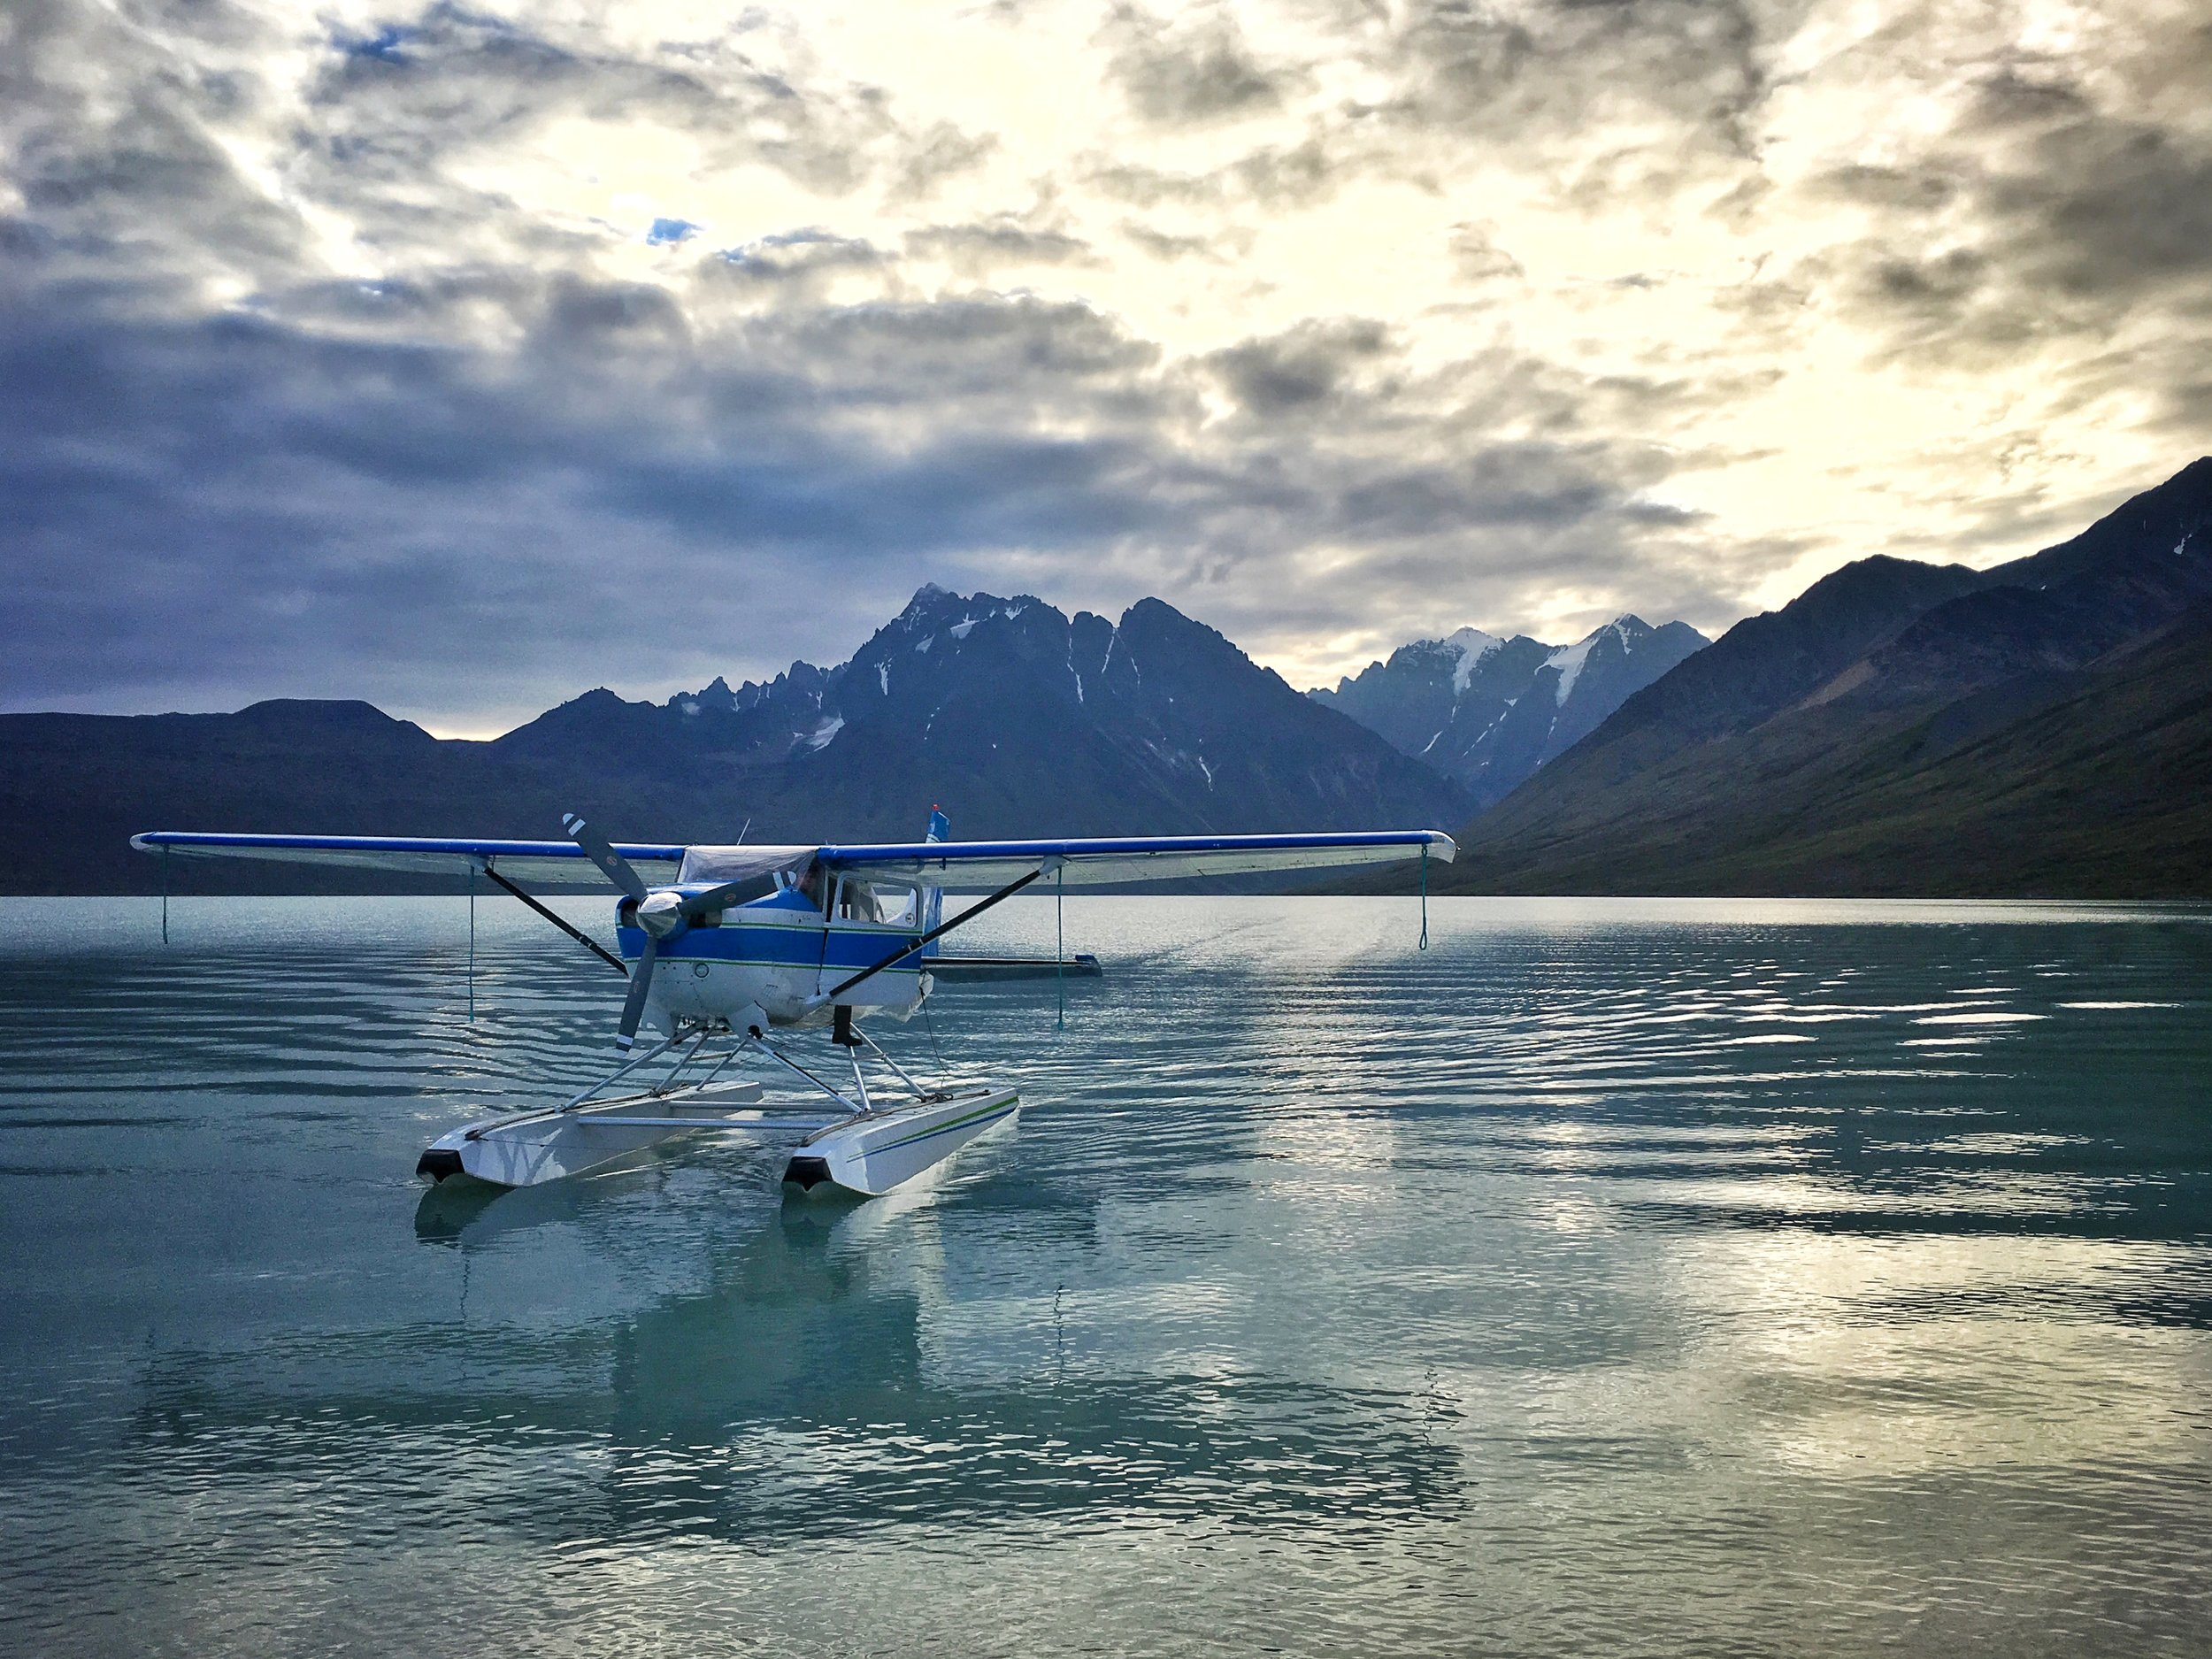 Our ride out of backcountry in Lake Clark National Park in Alaska. Photo credit: Stefanie Payne